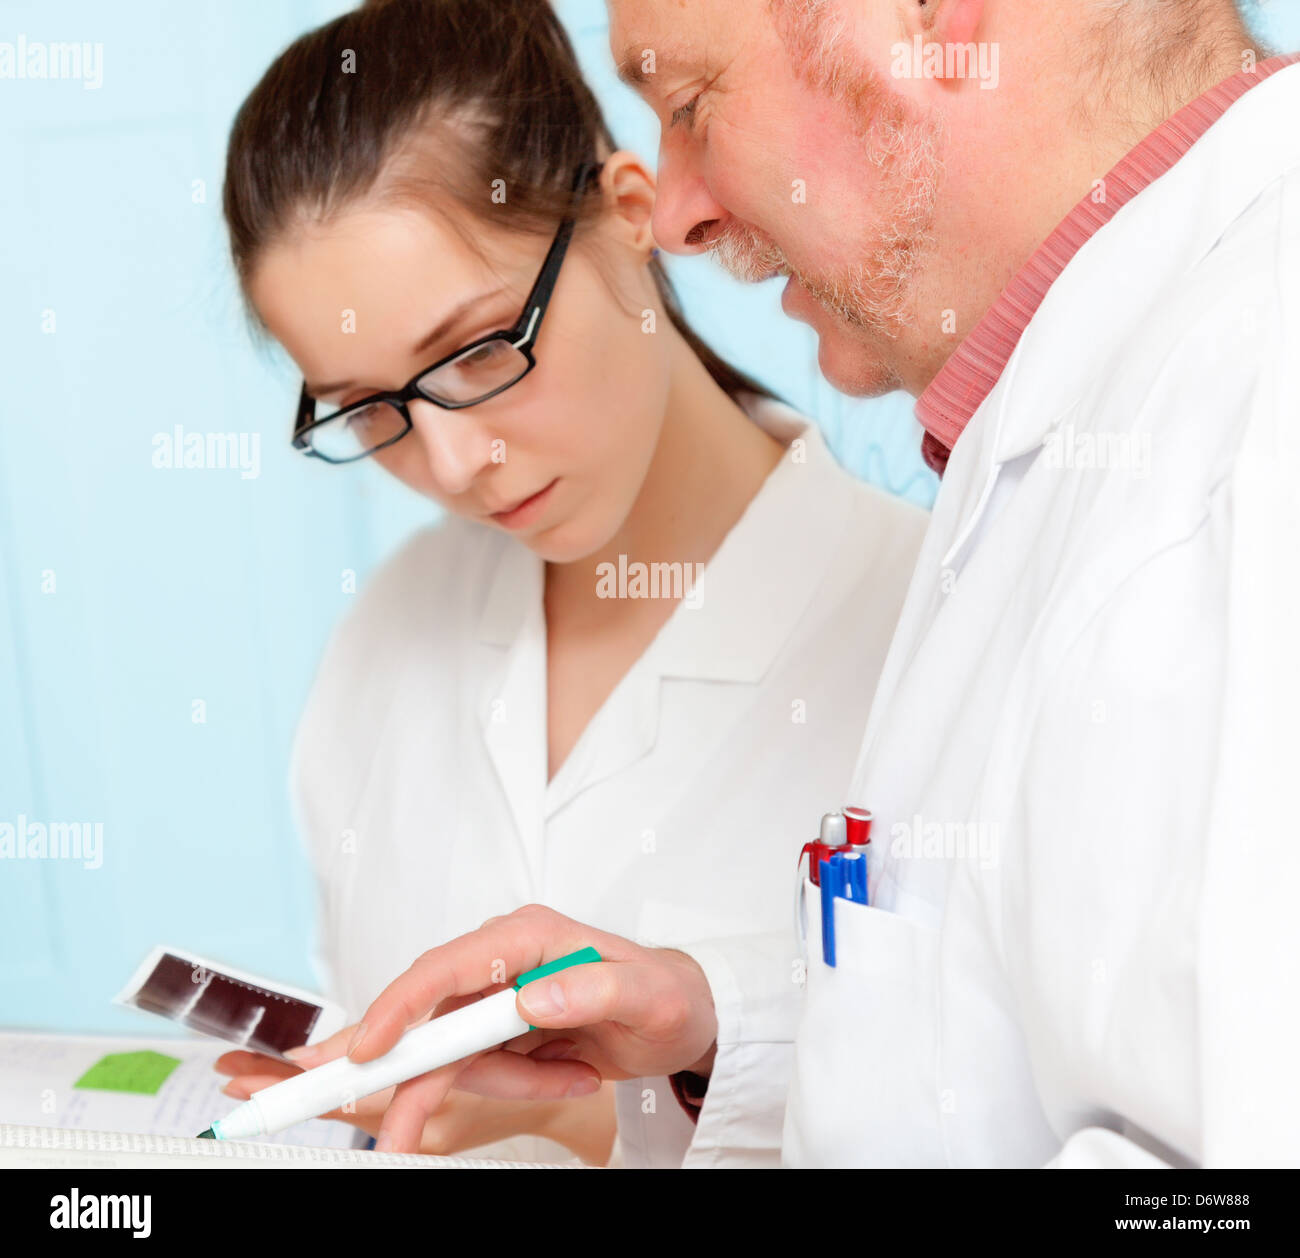 Council of physicians review the results of a genetic test - Stock Image